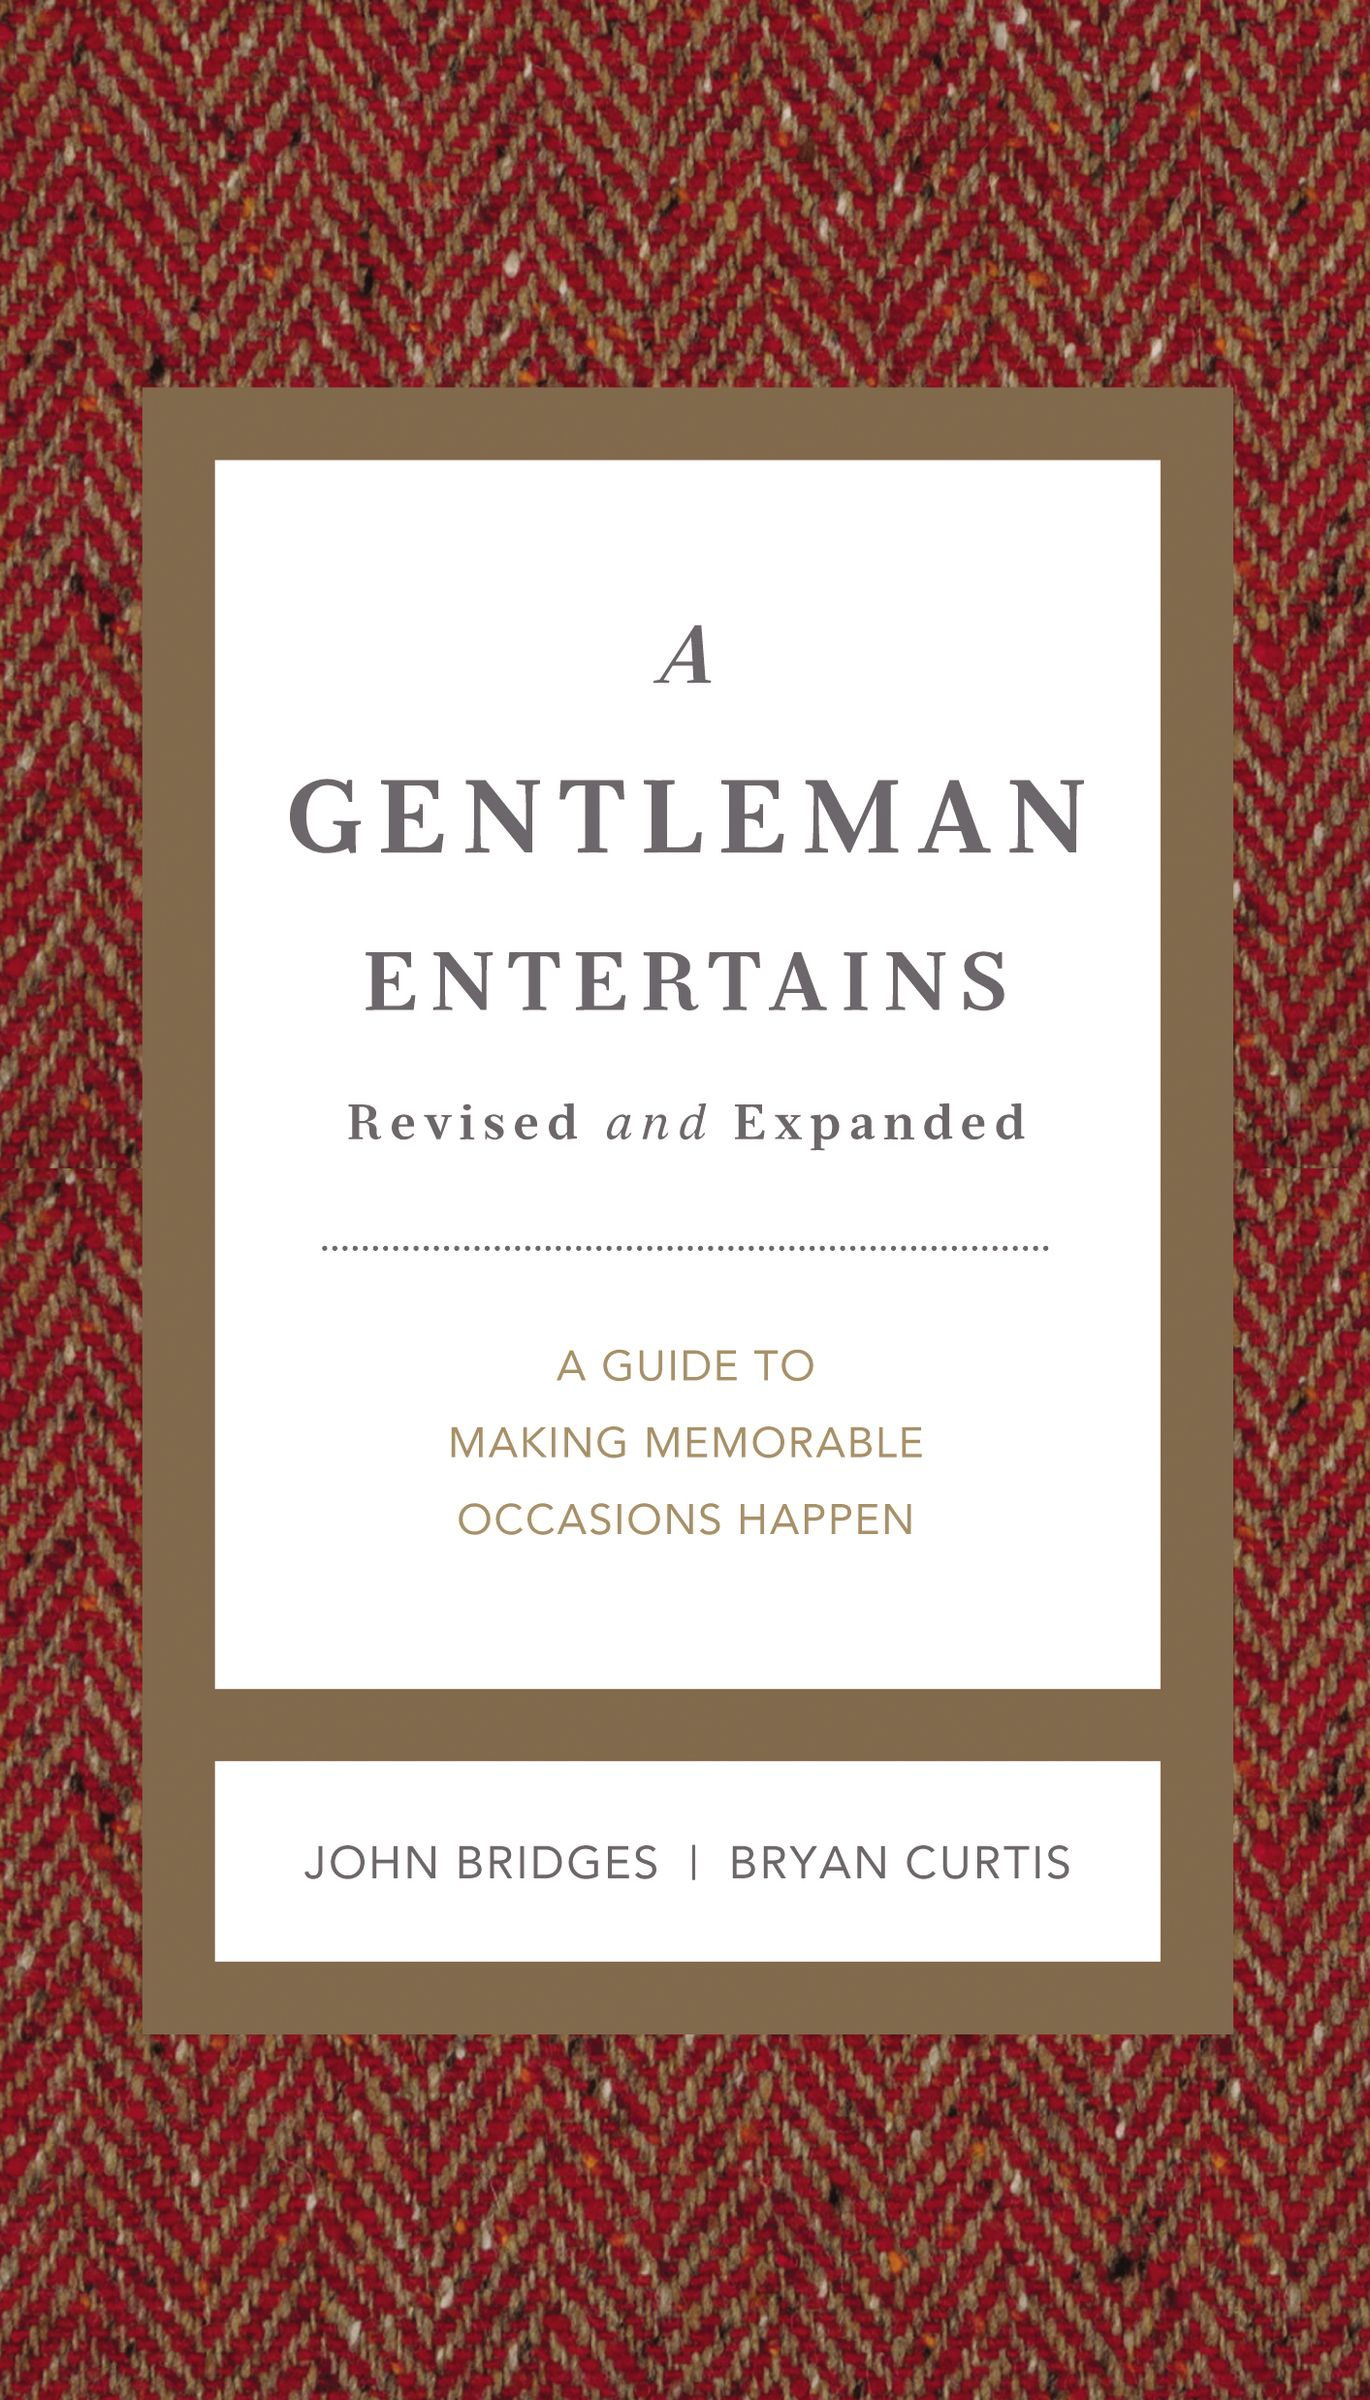 A Gentleman Entertains Revised and Expanded